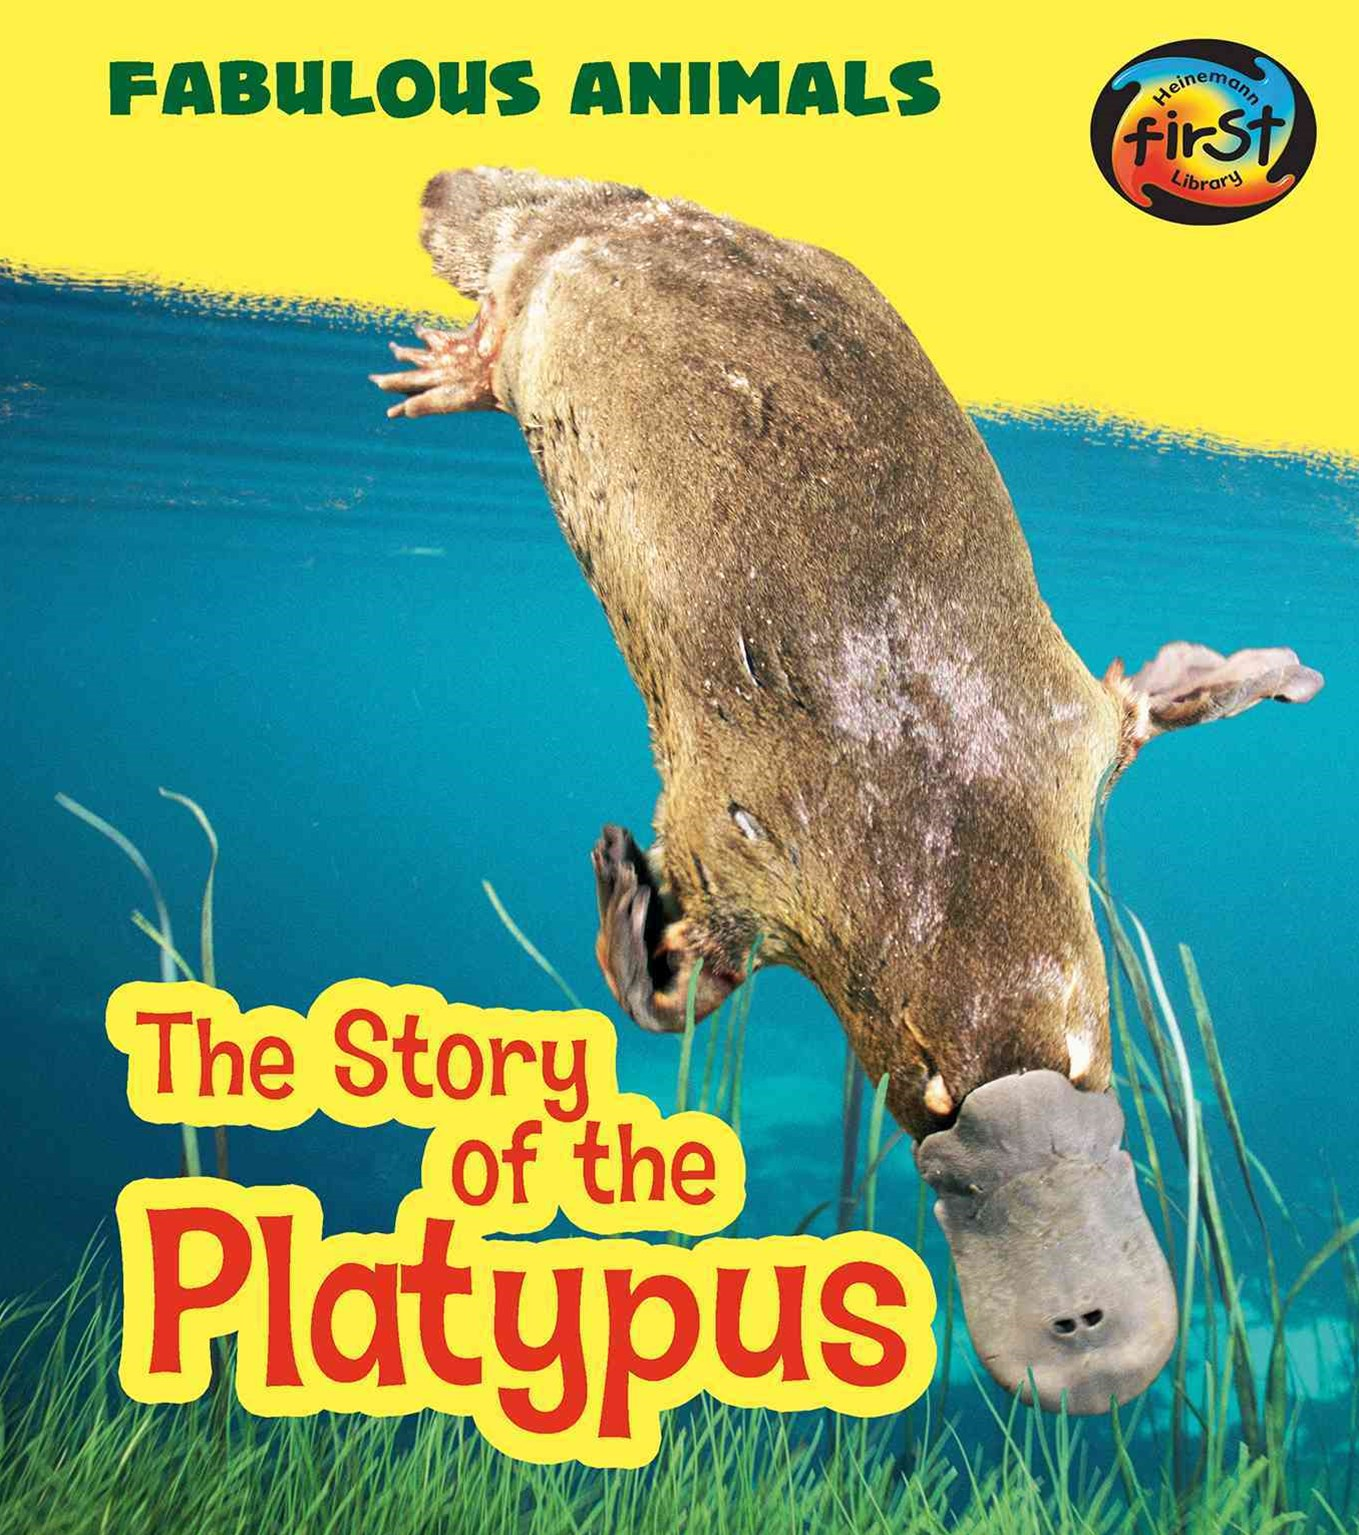 Discover the Platypus